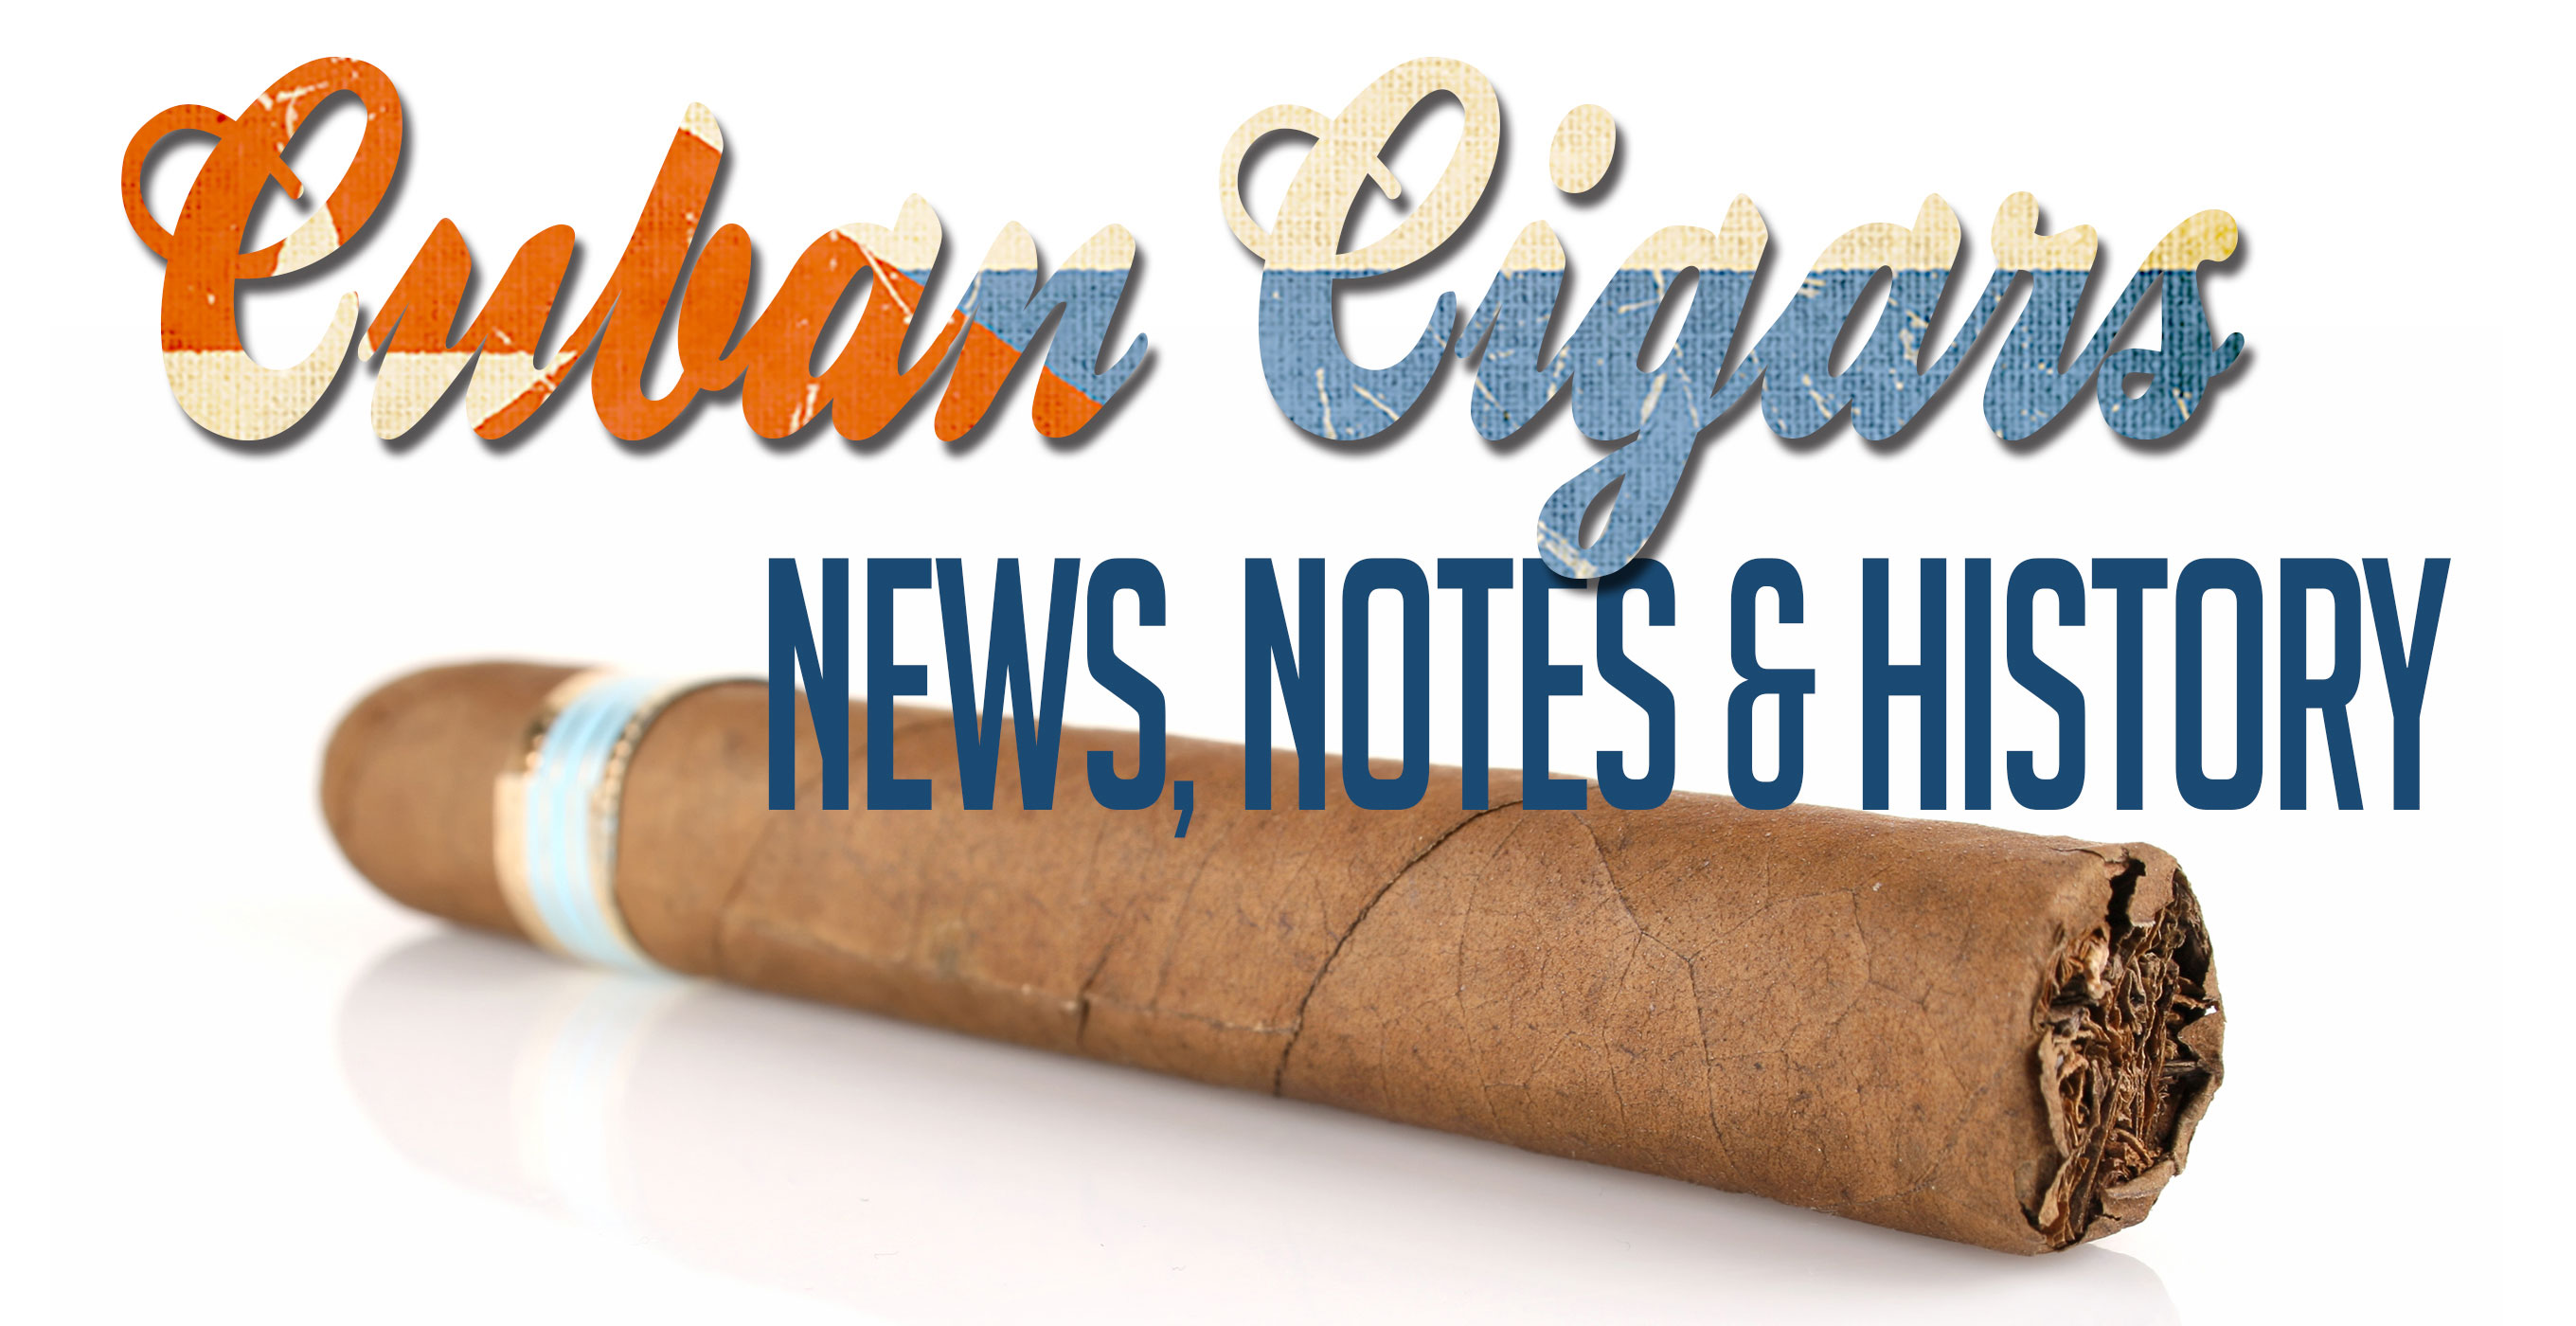 Cuban Cigars: News, Notes & History